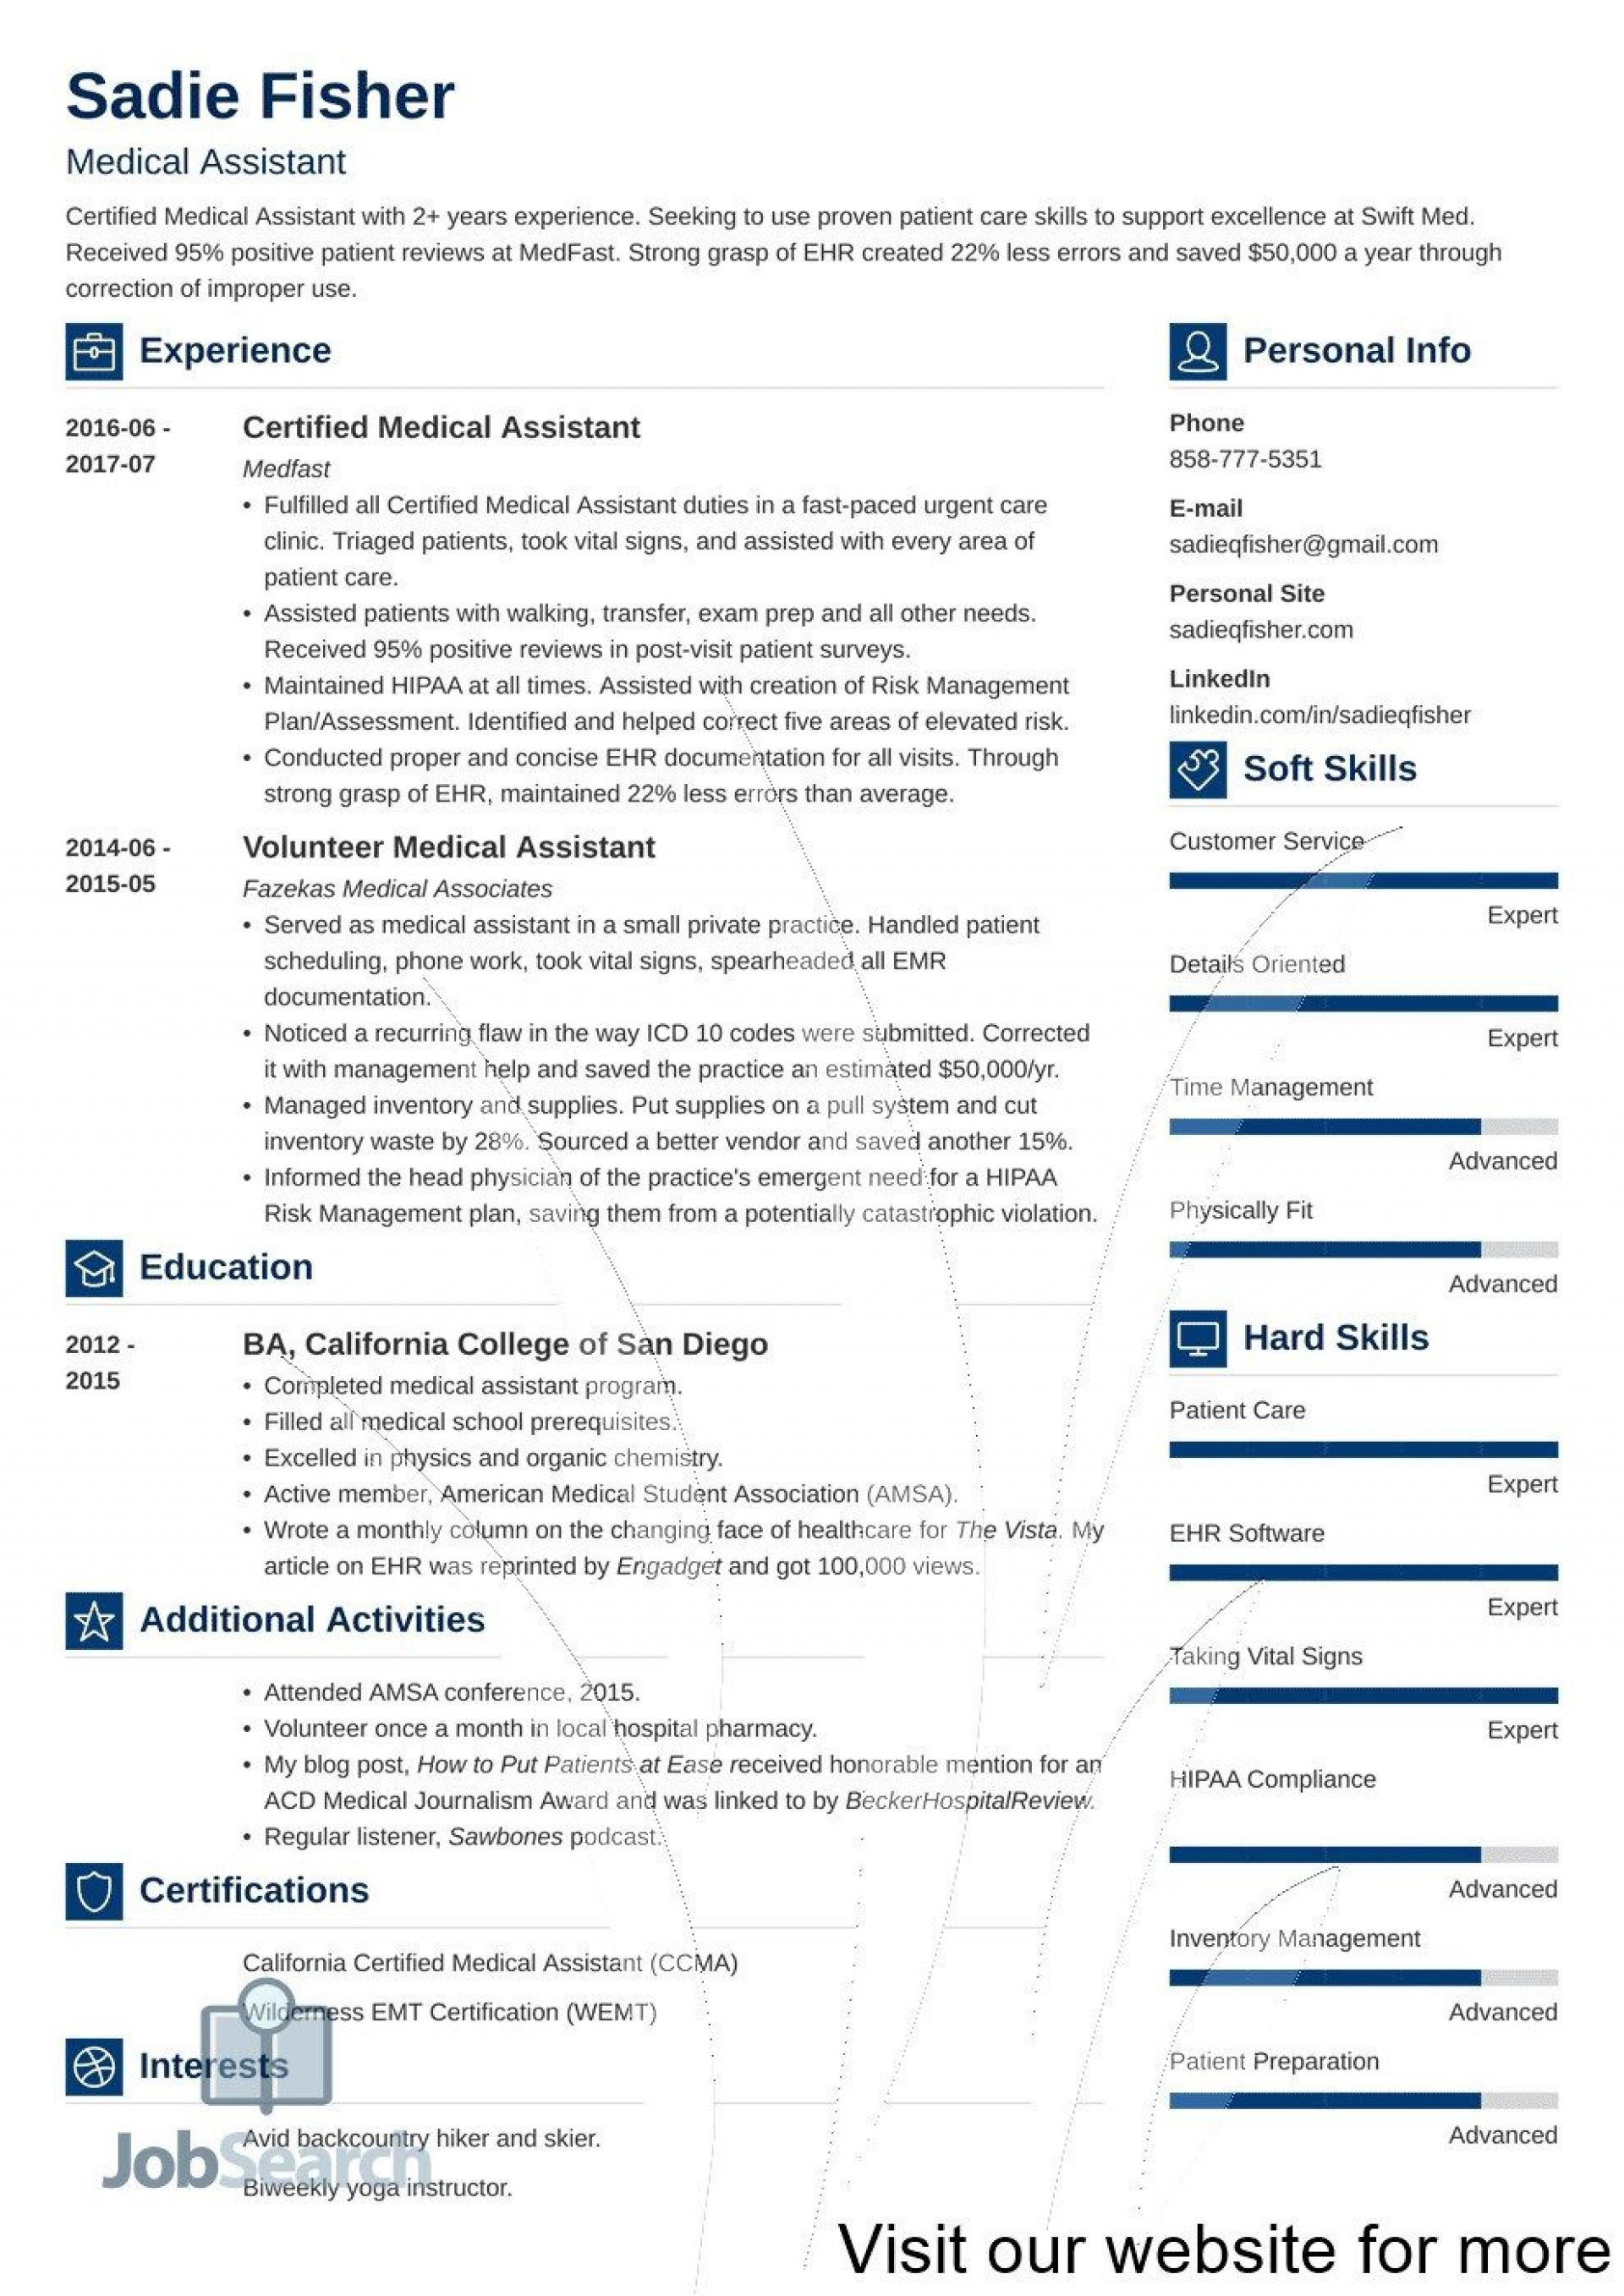 003 Awful Medical Resume Template Free Inspiration  Receptionist Cv Coder1920